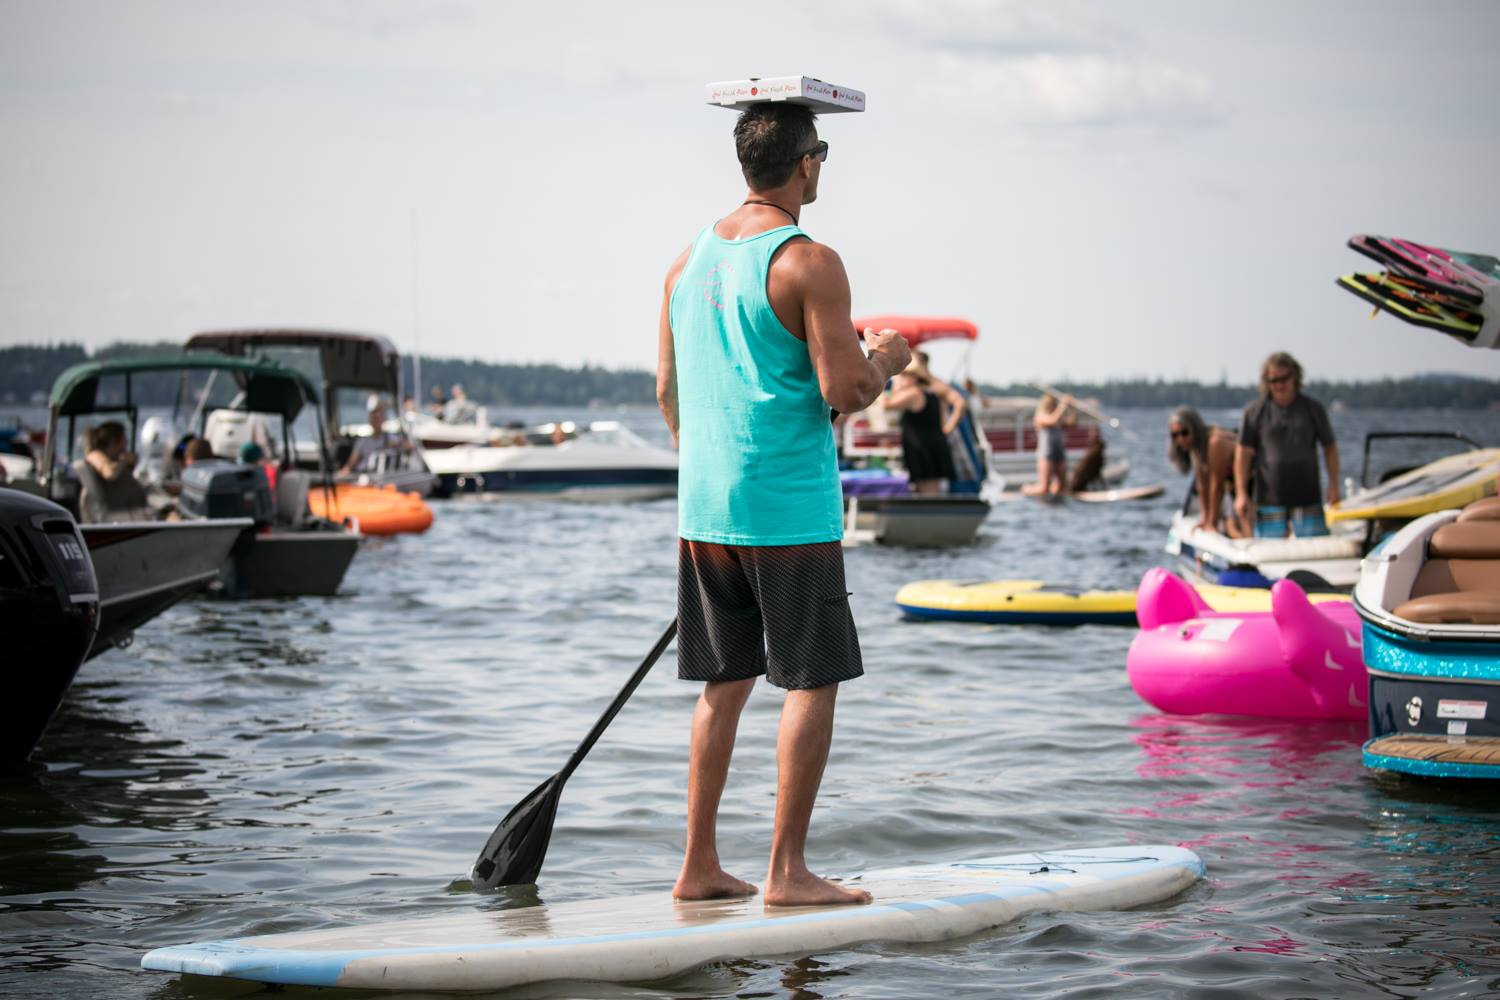 paddle board pizza delivery.jpg